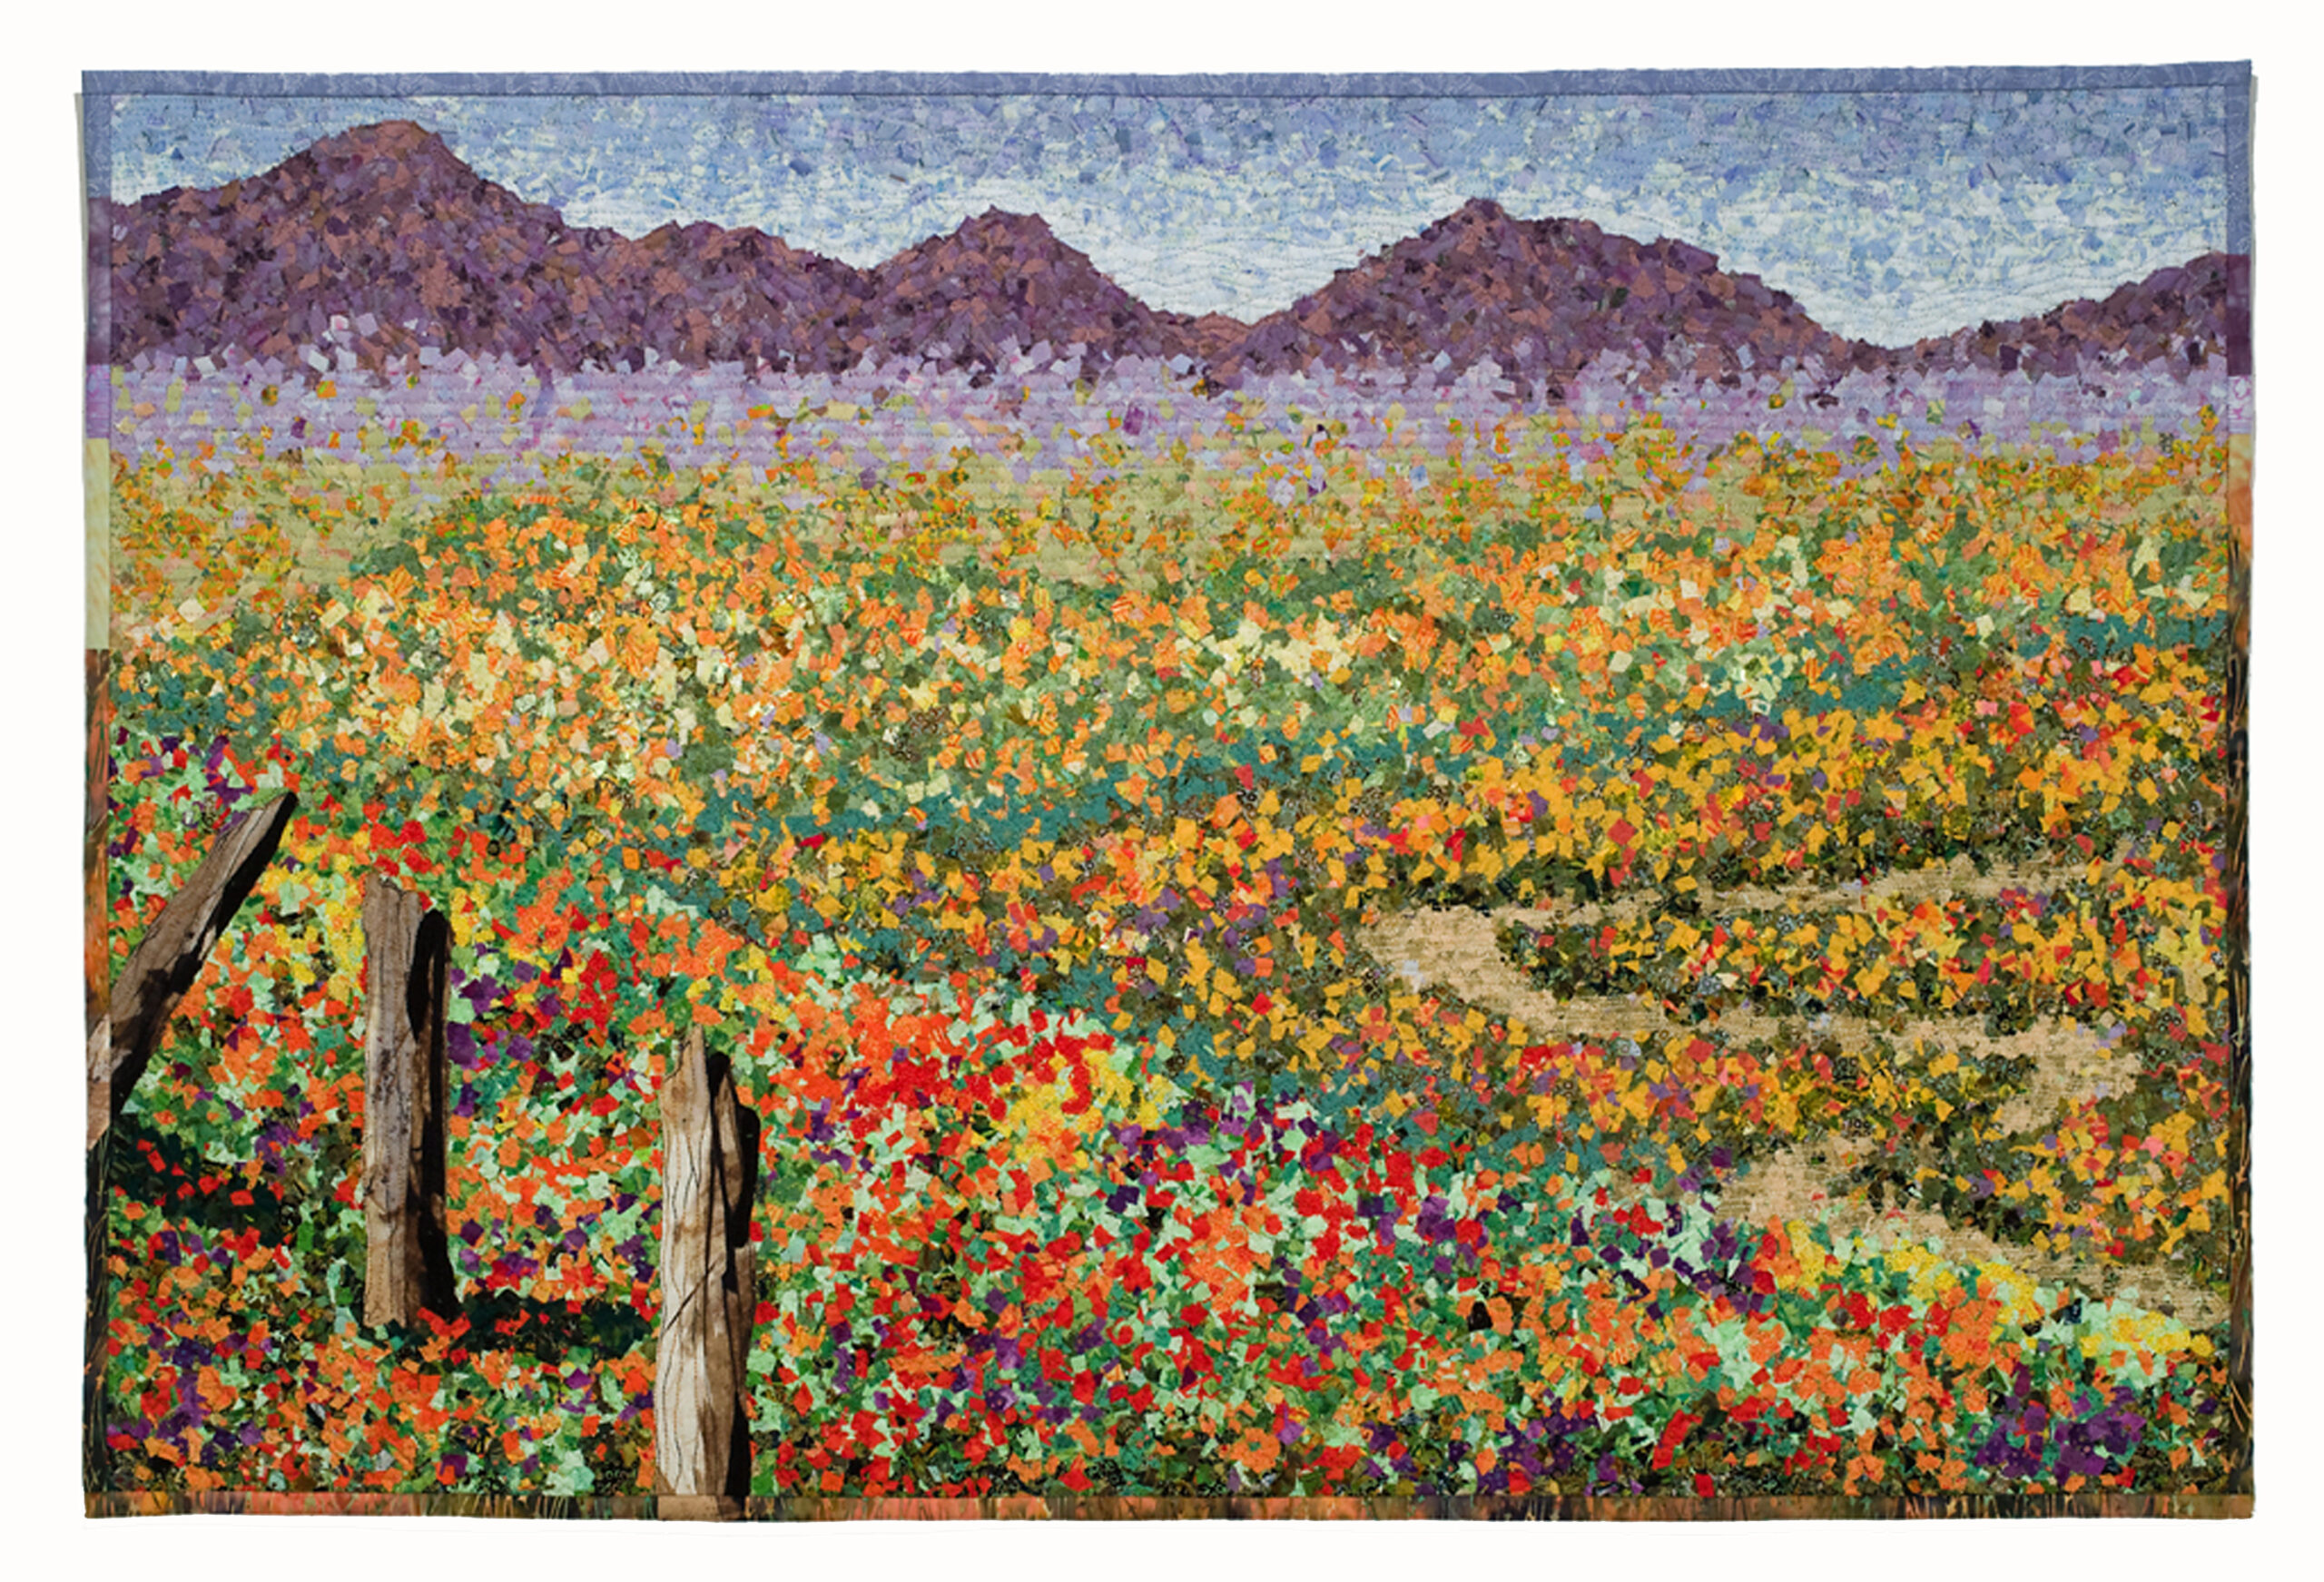 Stitching California: Fiber Artists Interpret the State's People, Life and Land